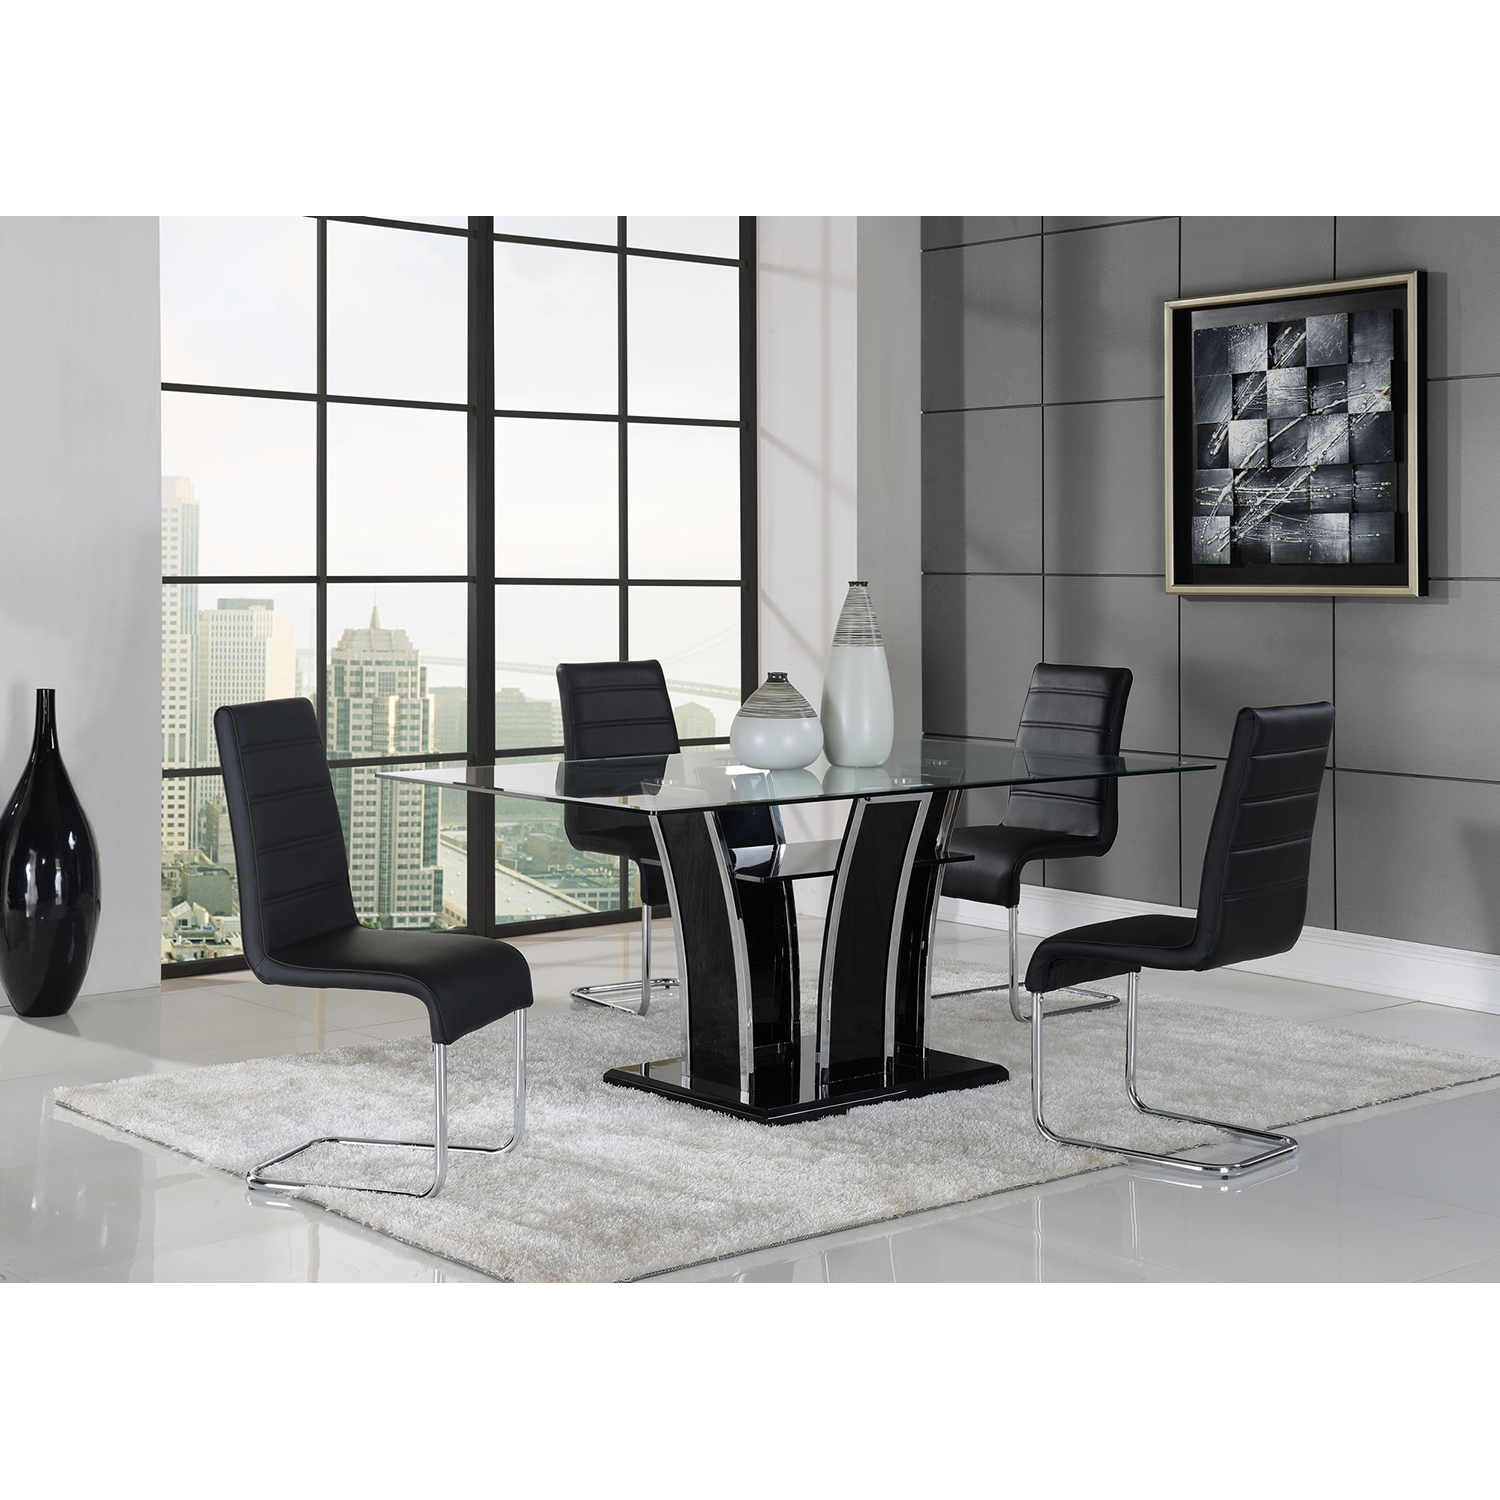 Caitlin Dining Table, Black - GLO-D1087DT-M